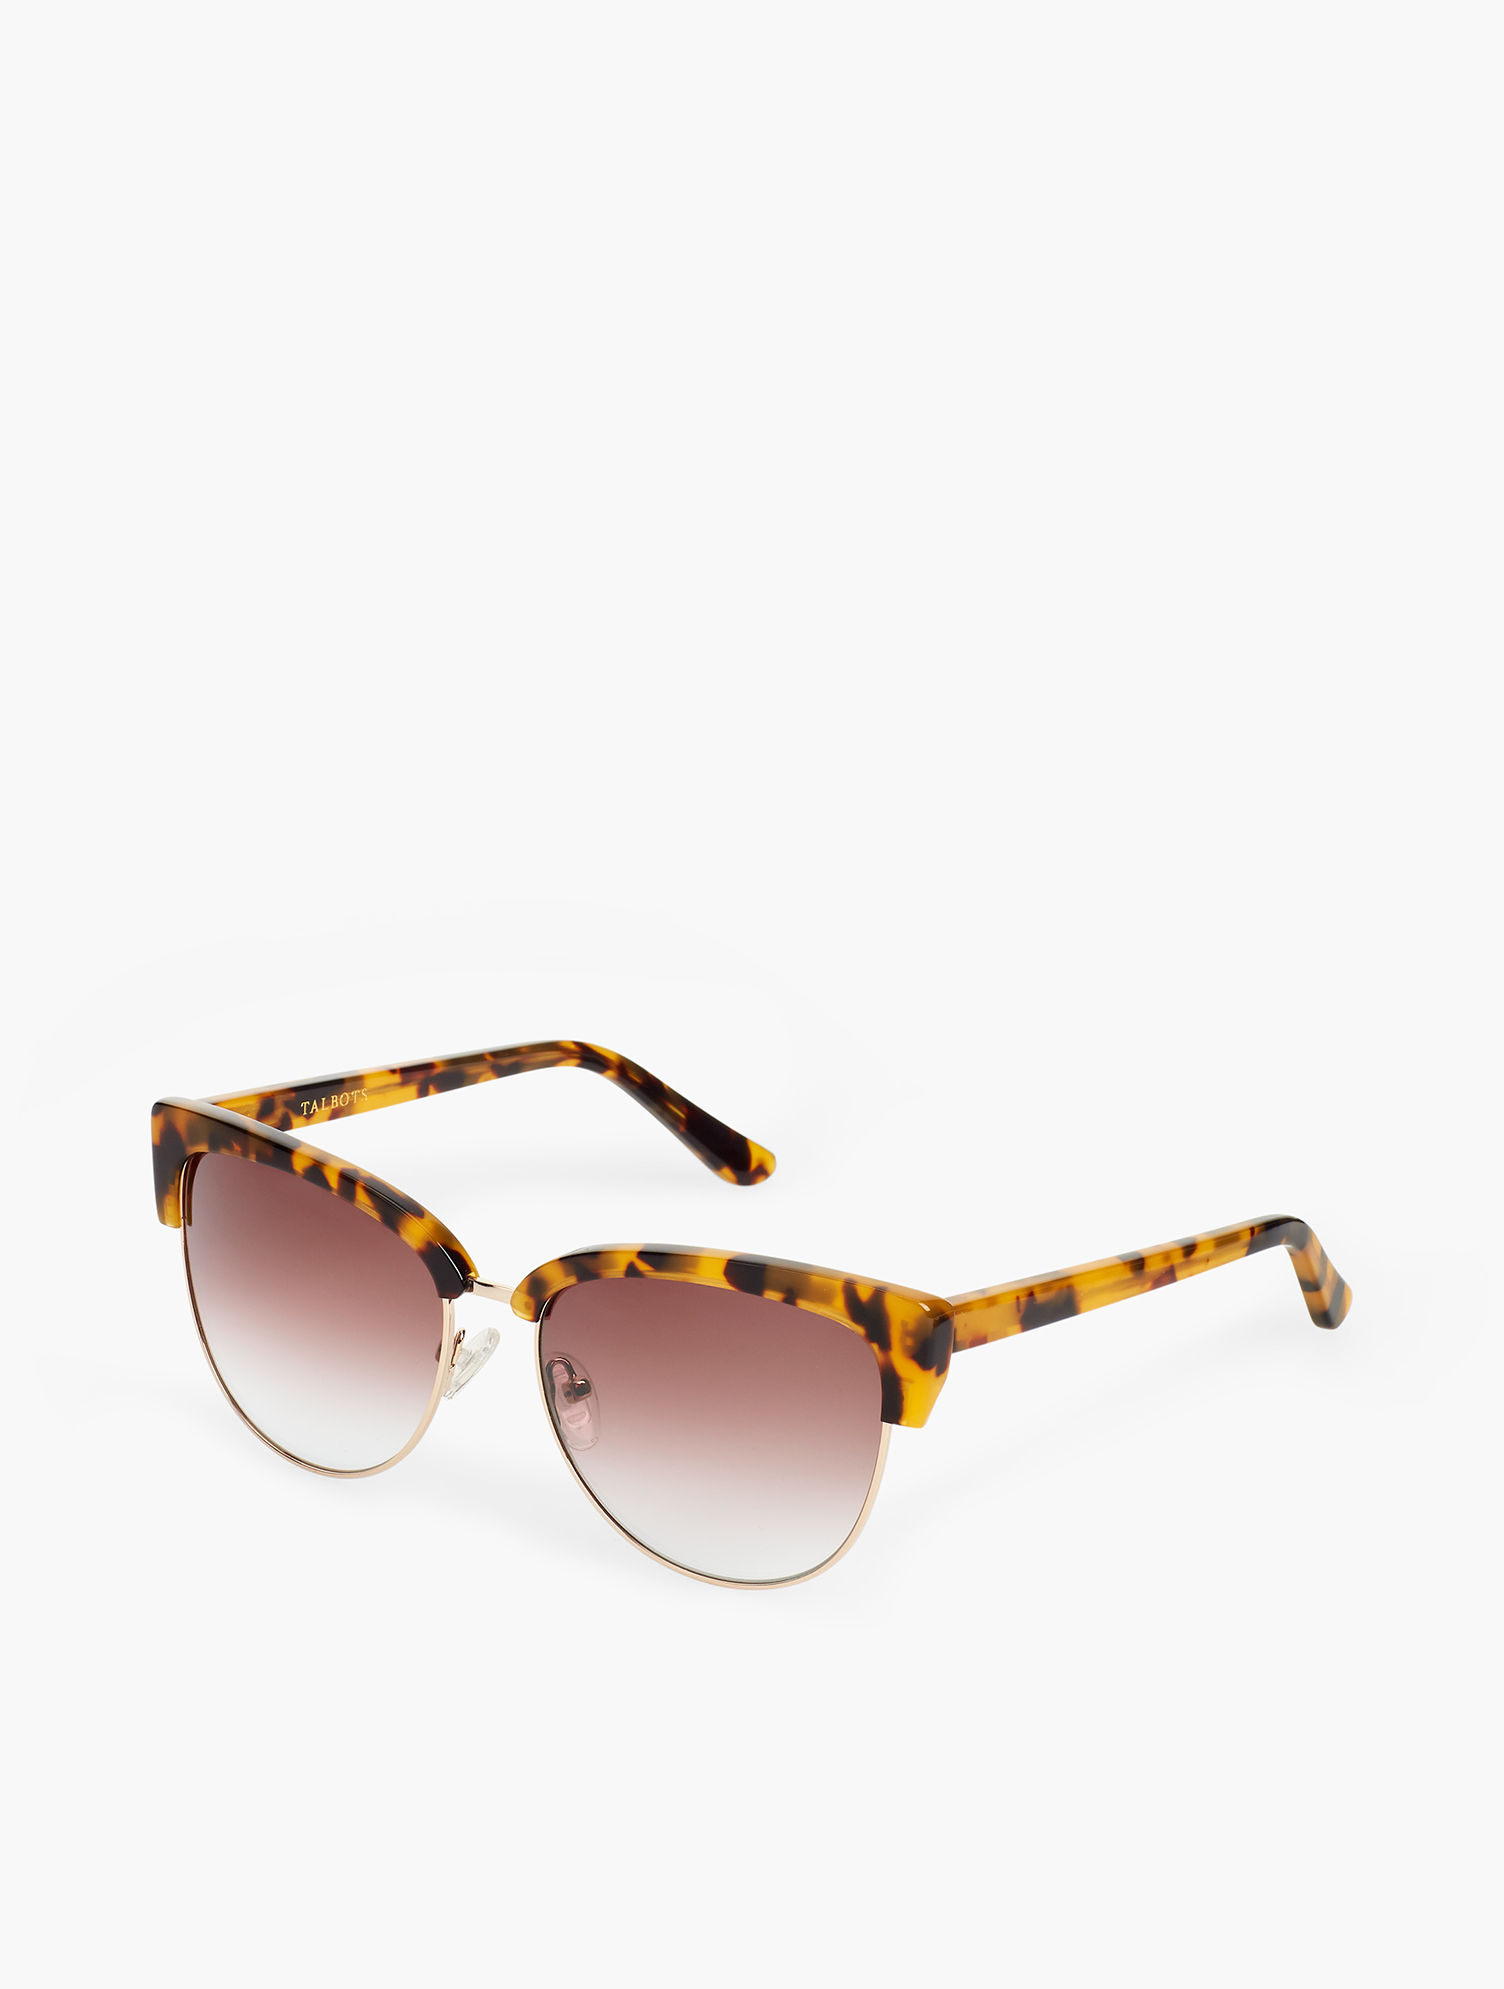 Finished in a sleek honey tortoise. Neutral rims make them easy to wear with any outfit. Features Frame Shape: Square Microfiber Pouch Imported Material: 100% Plastic Tracey Sunglasses - Tokyo Tort - 001 Talbots